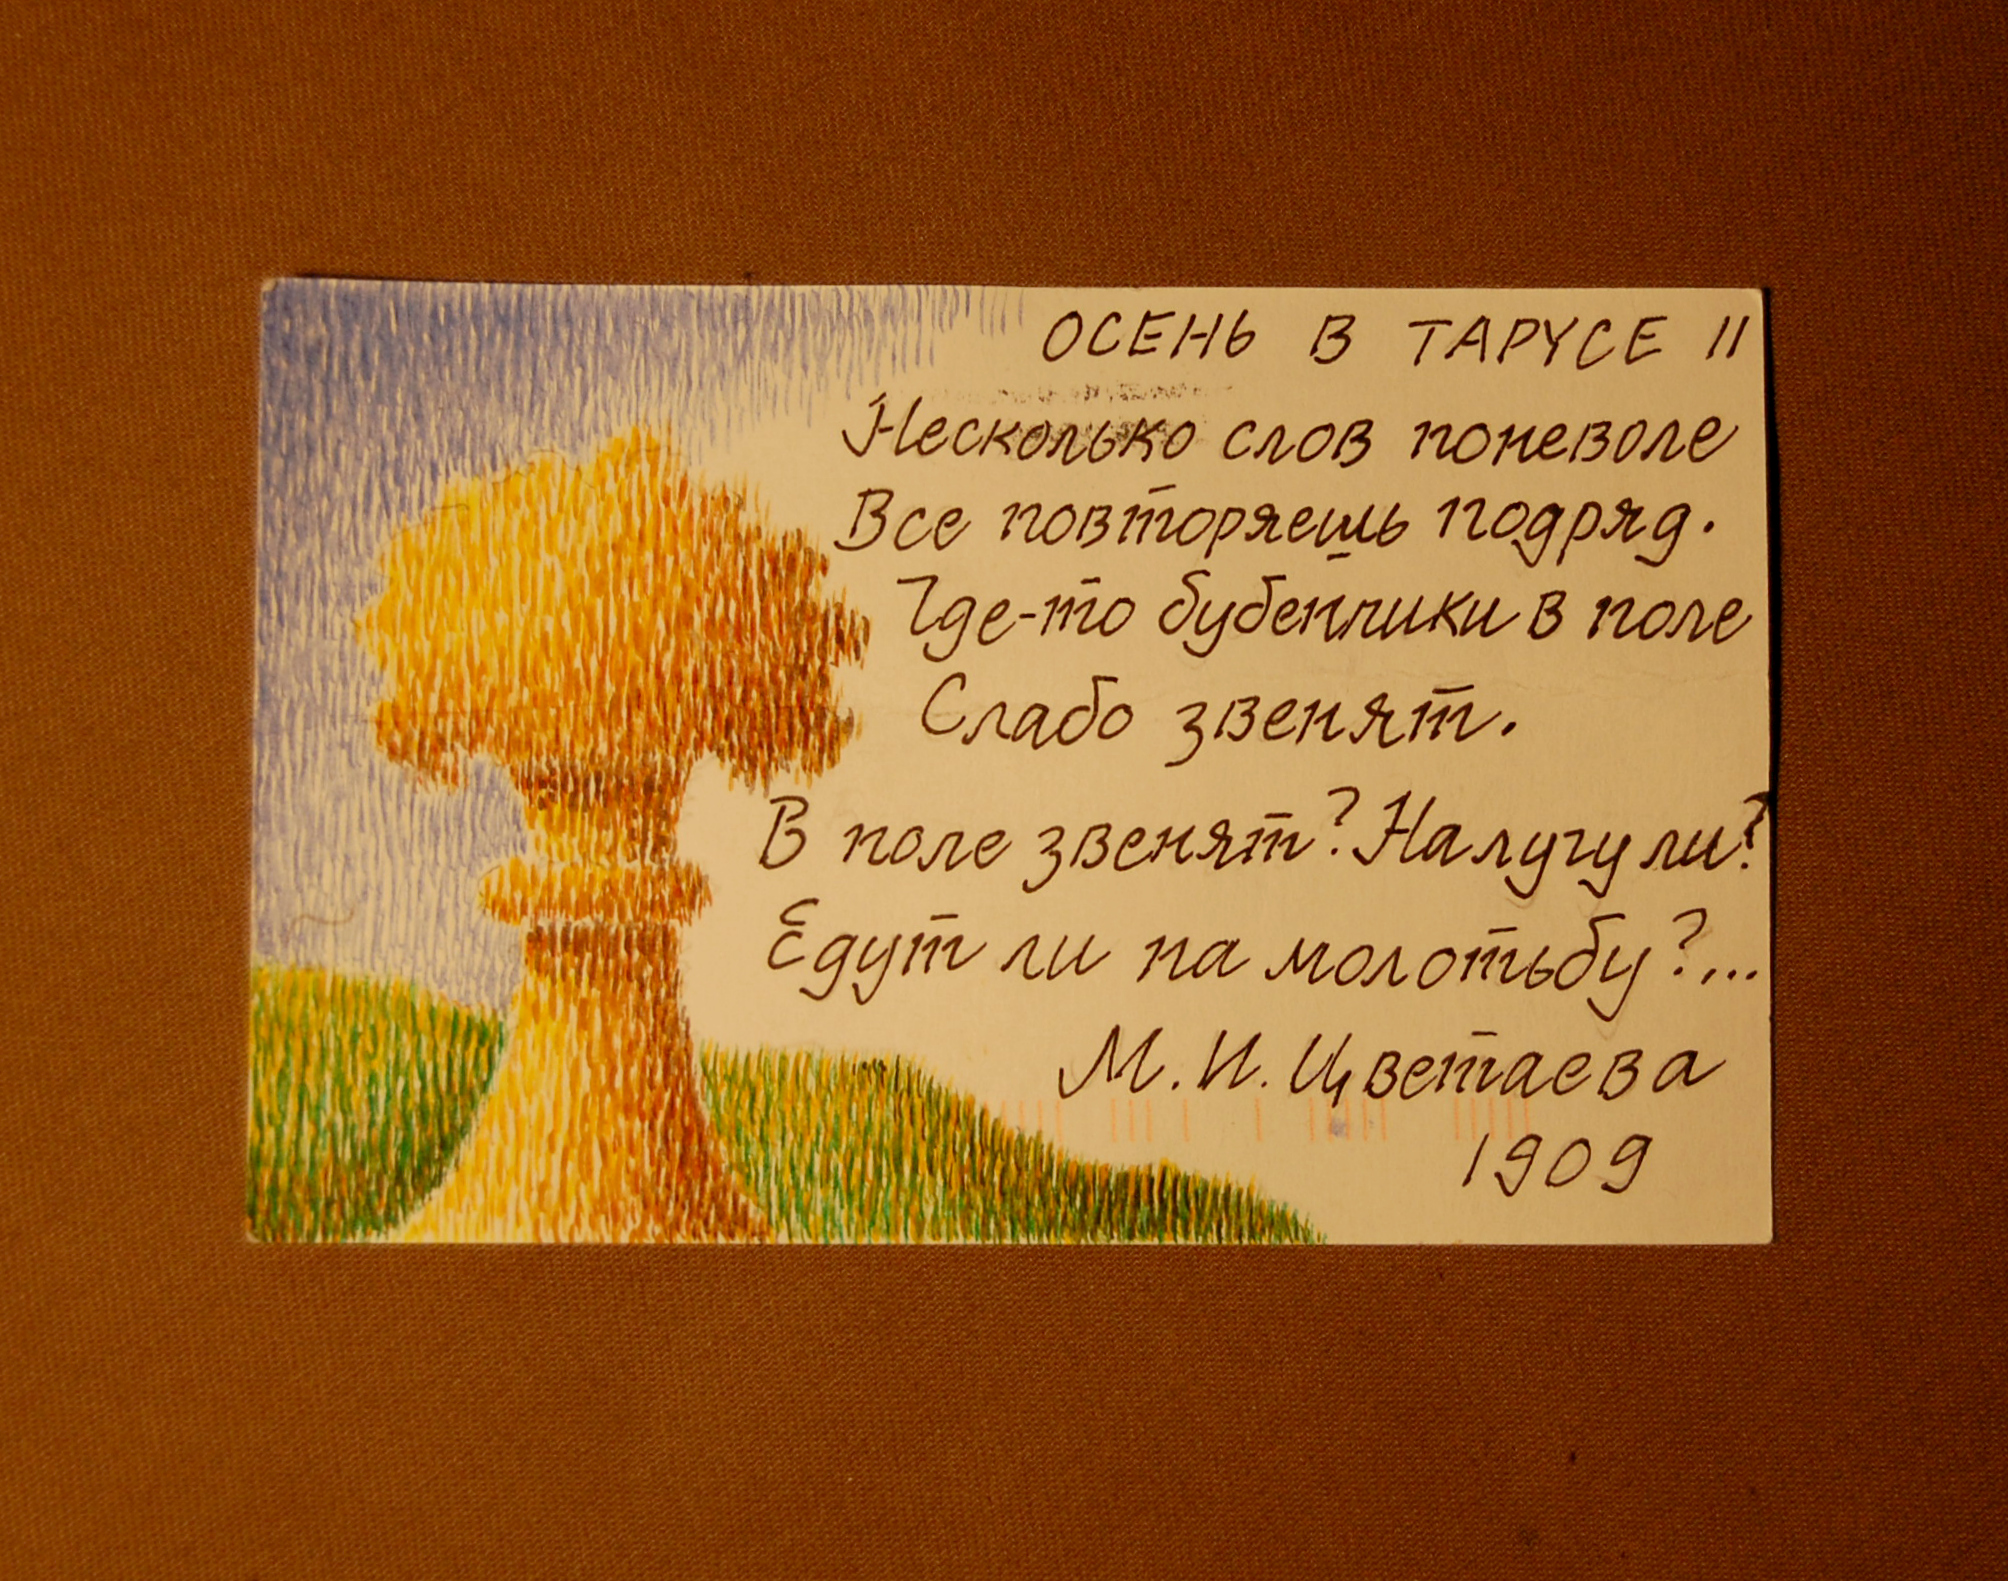 Autumn in Taurus 2 (Russian) - Postcard 5, Side B